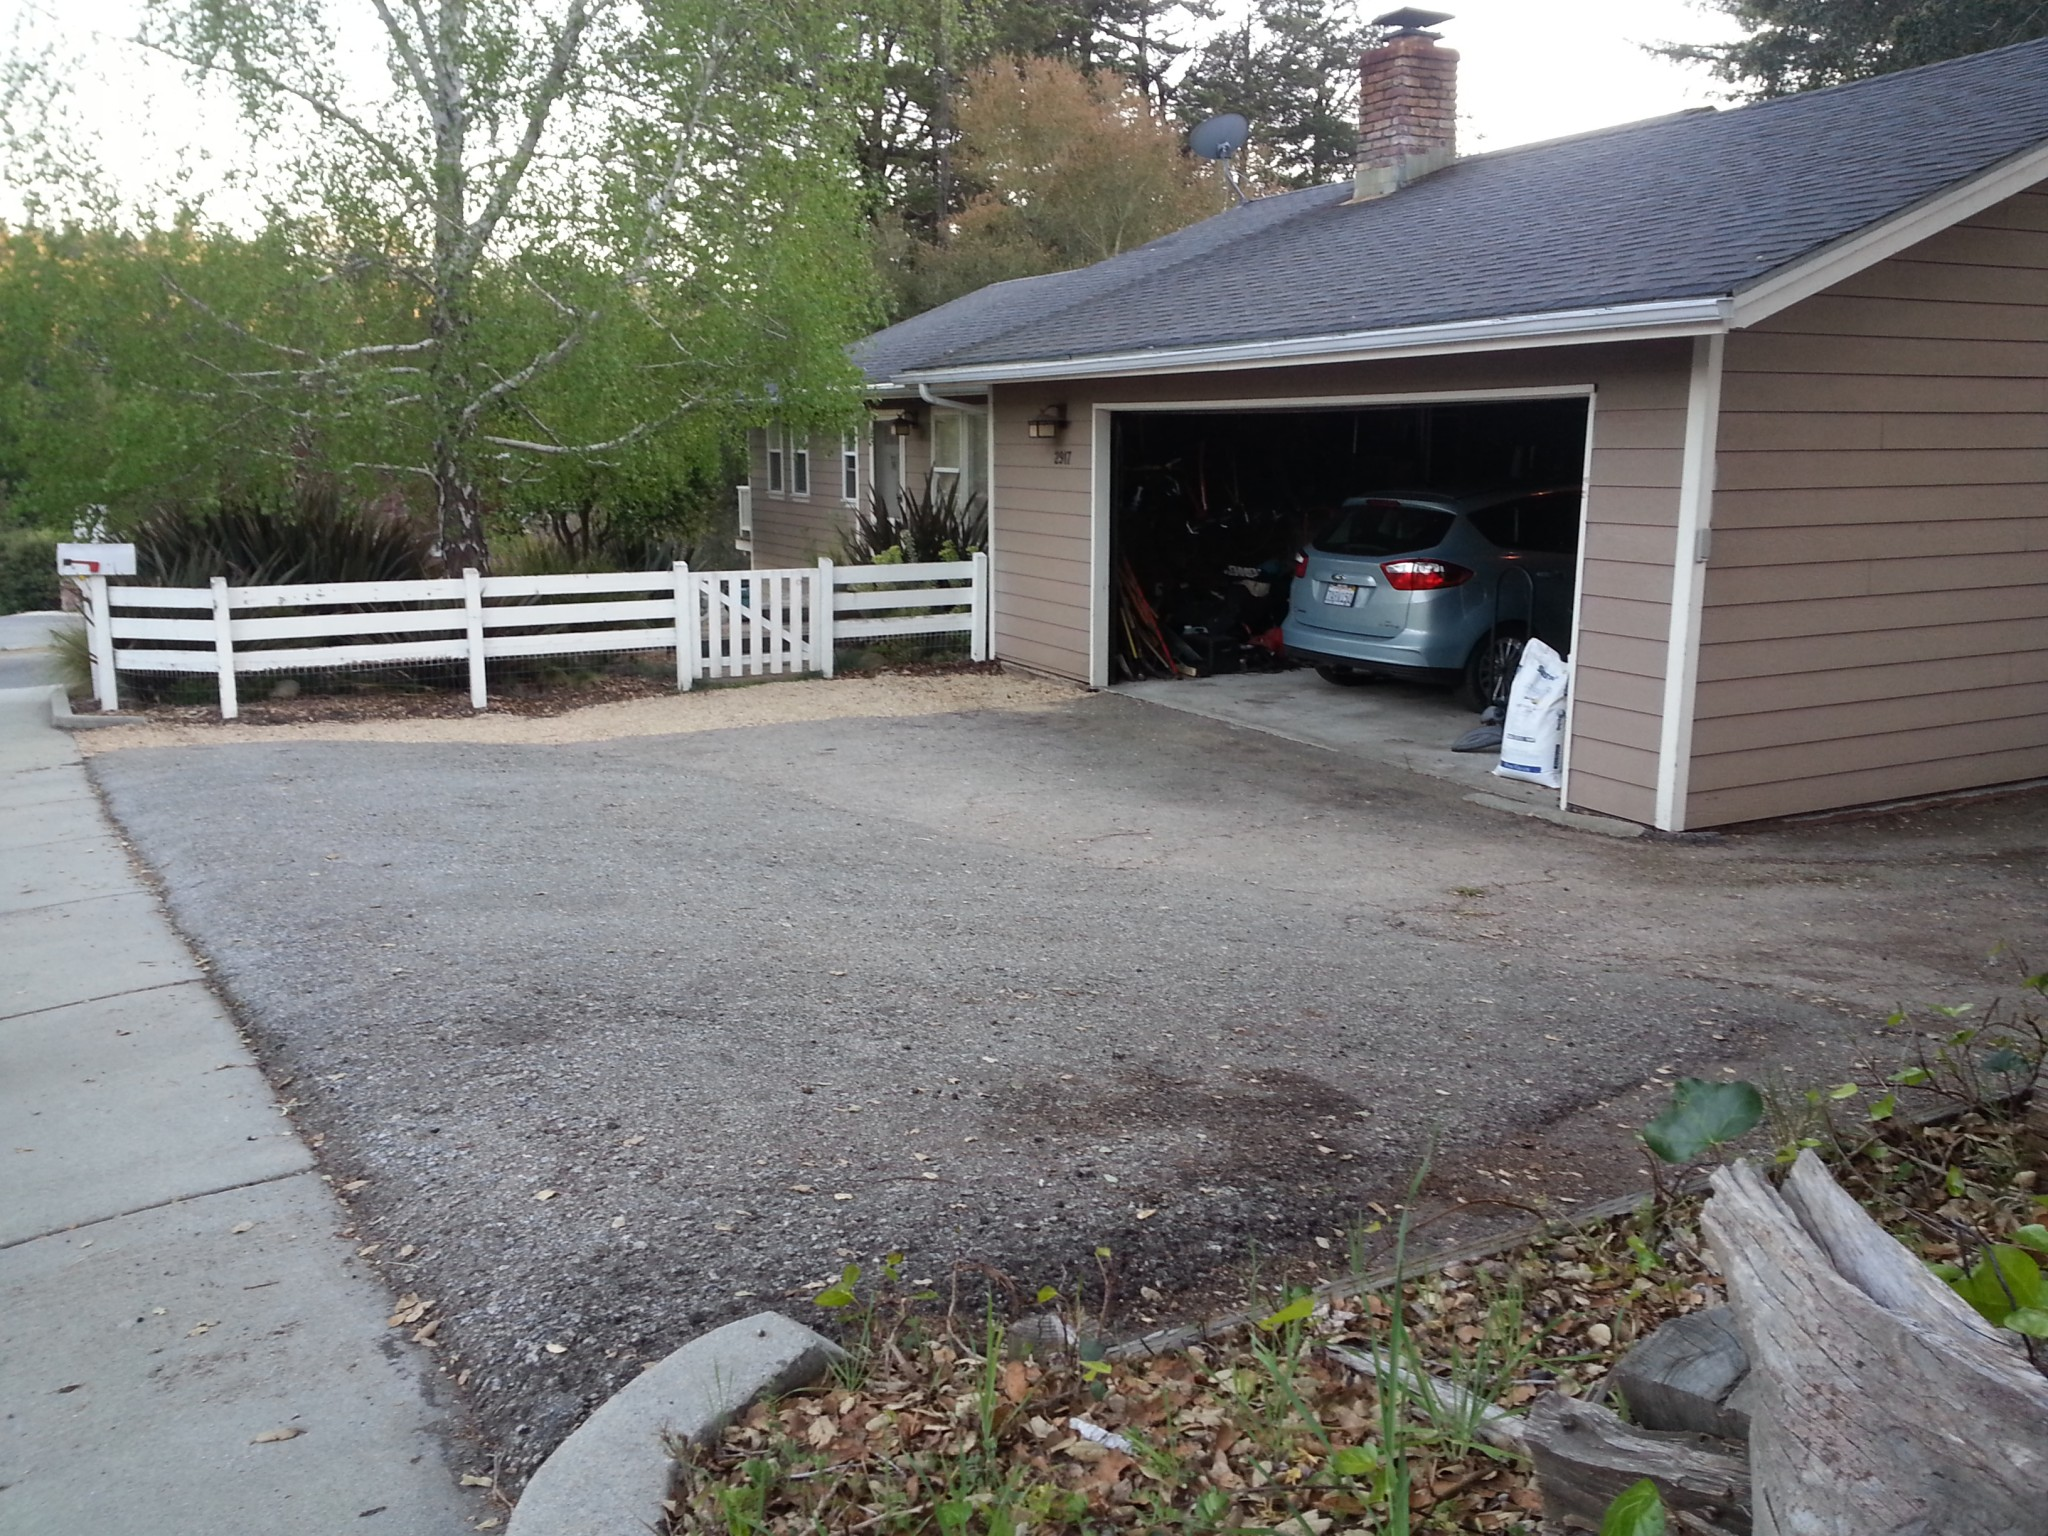 1200 square feet of asphalt driveway was removed